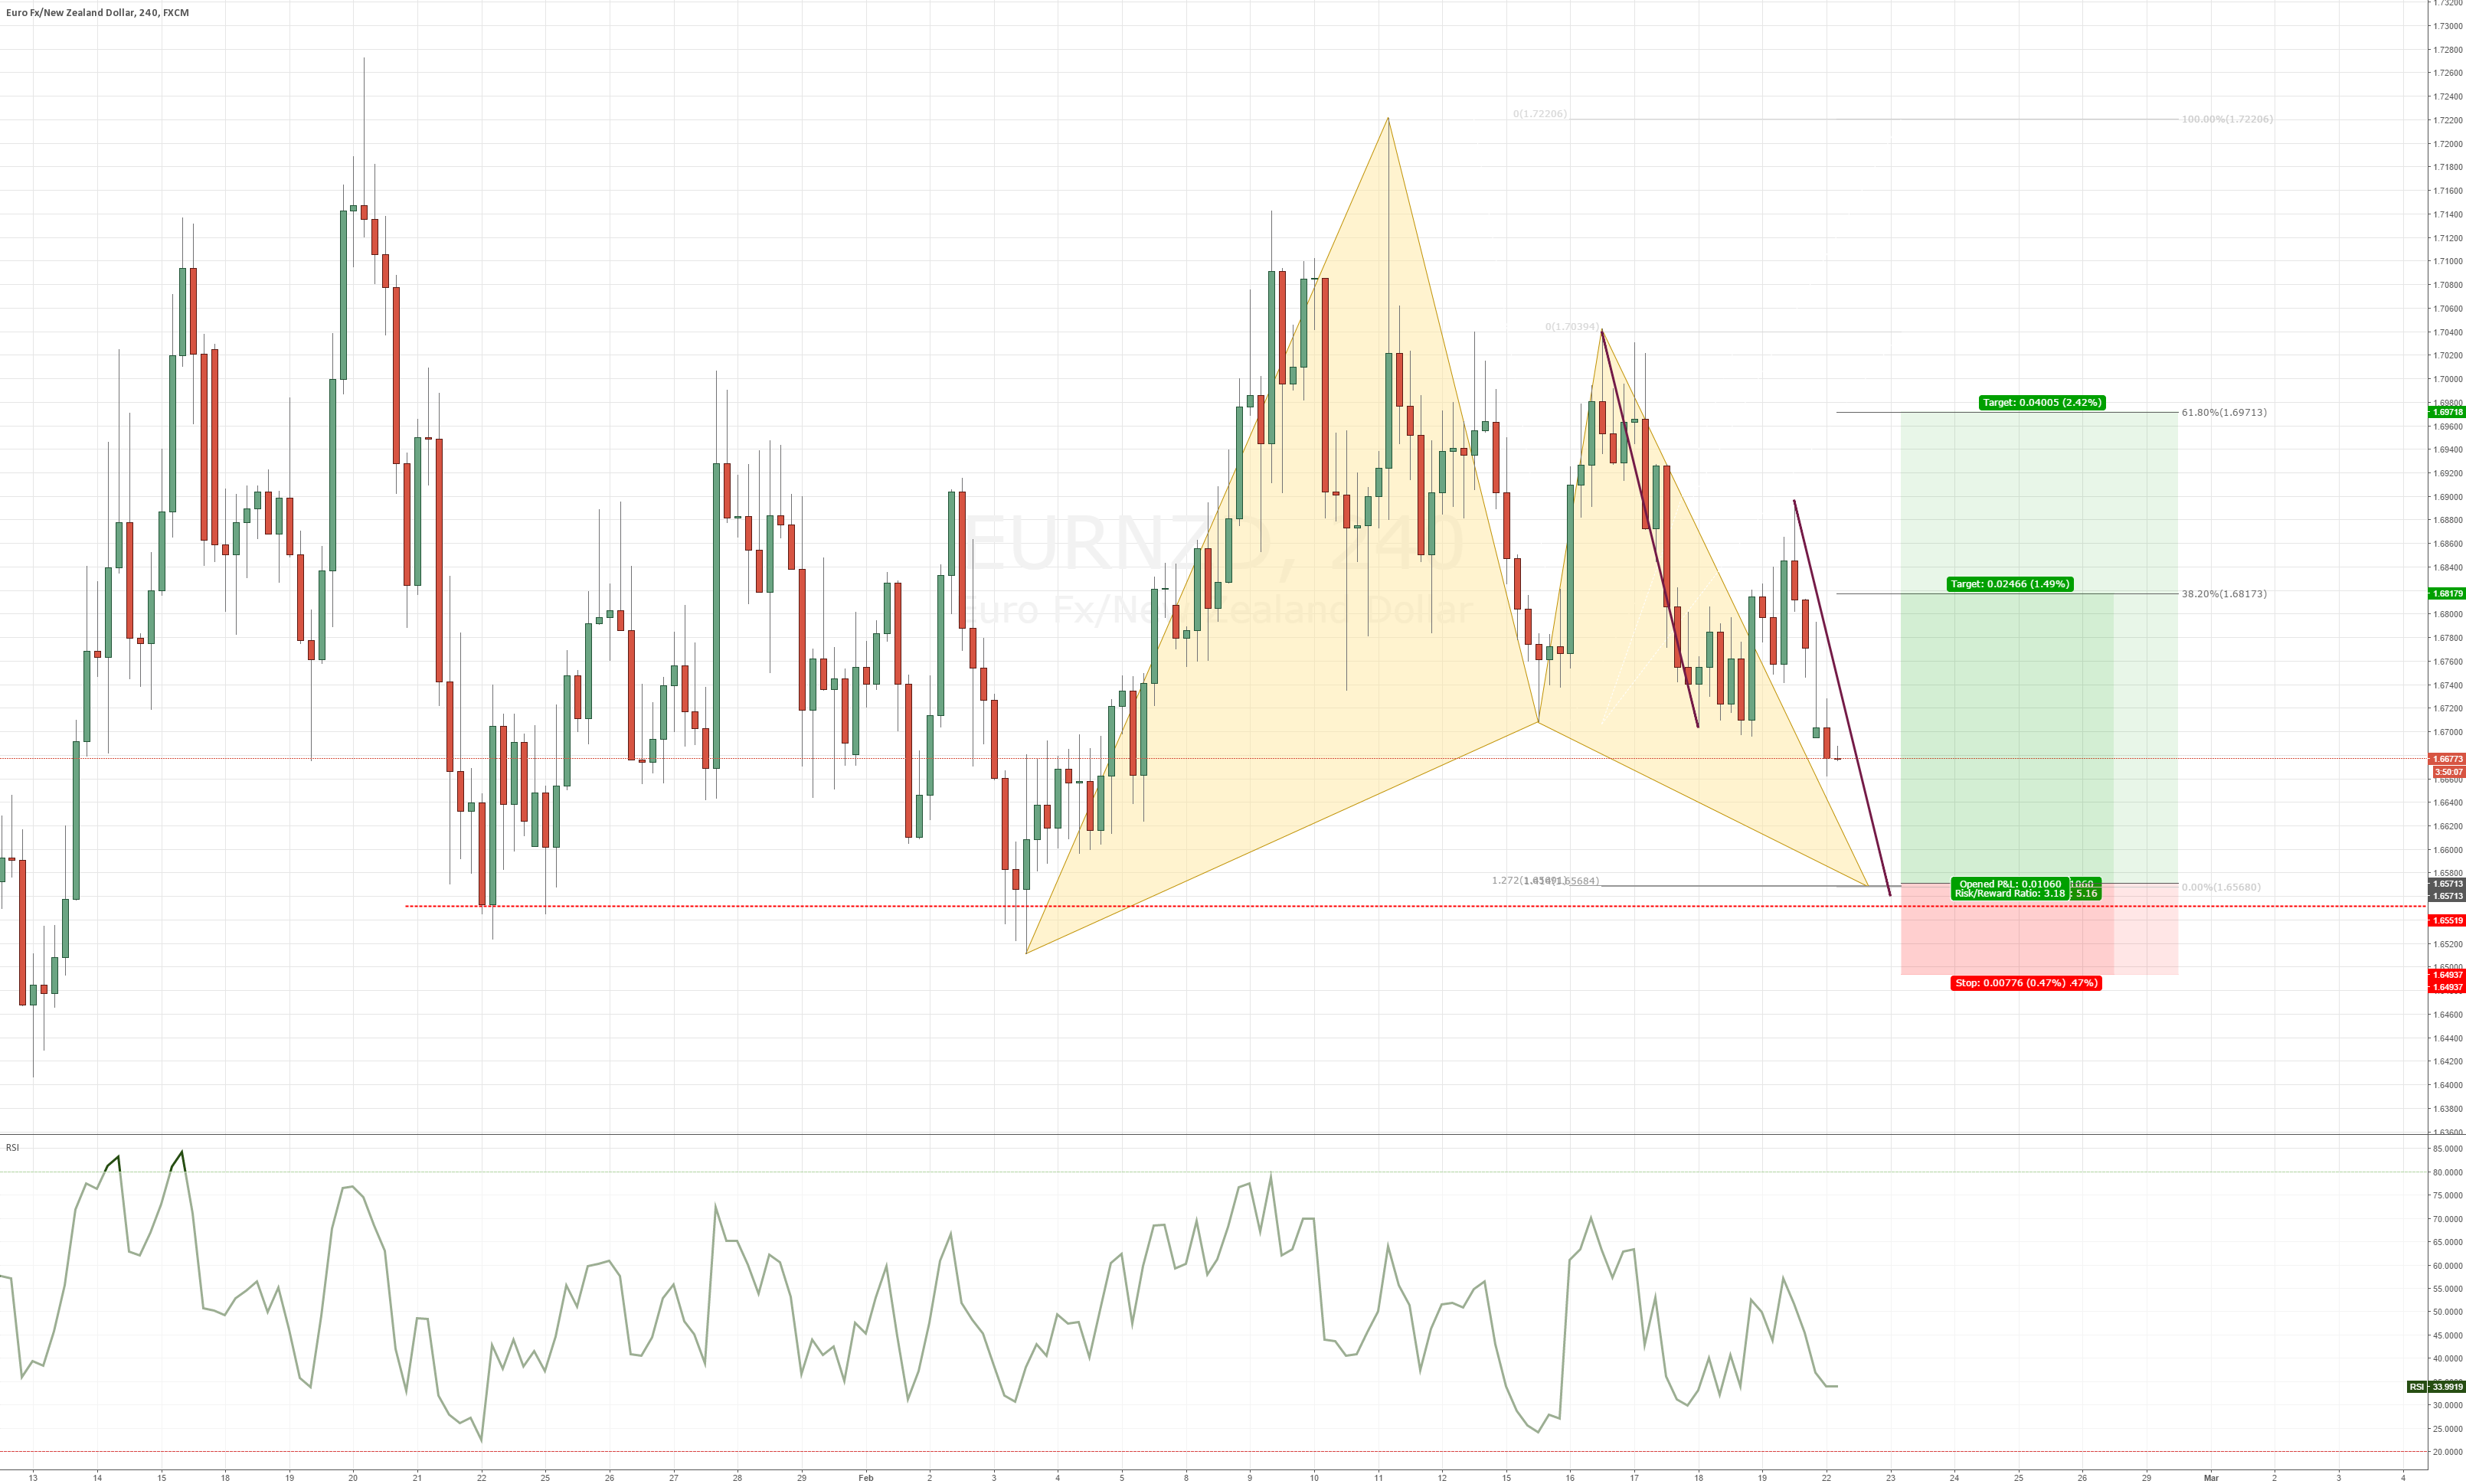 EURNZD - Bullish Gartley pattern at previous structure